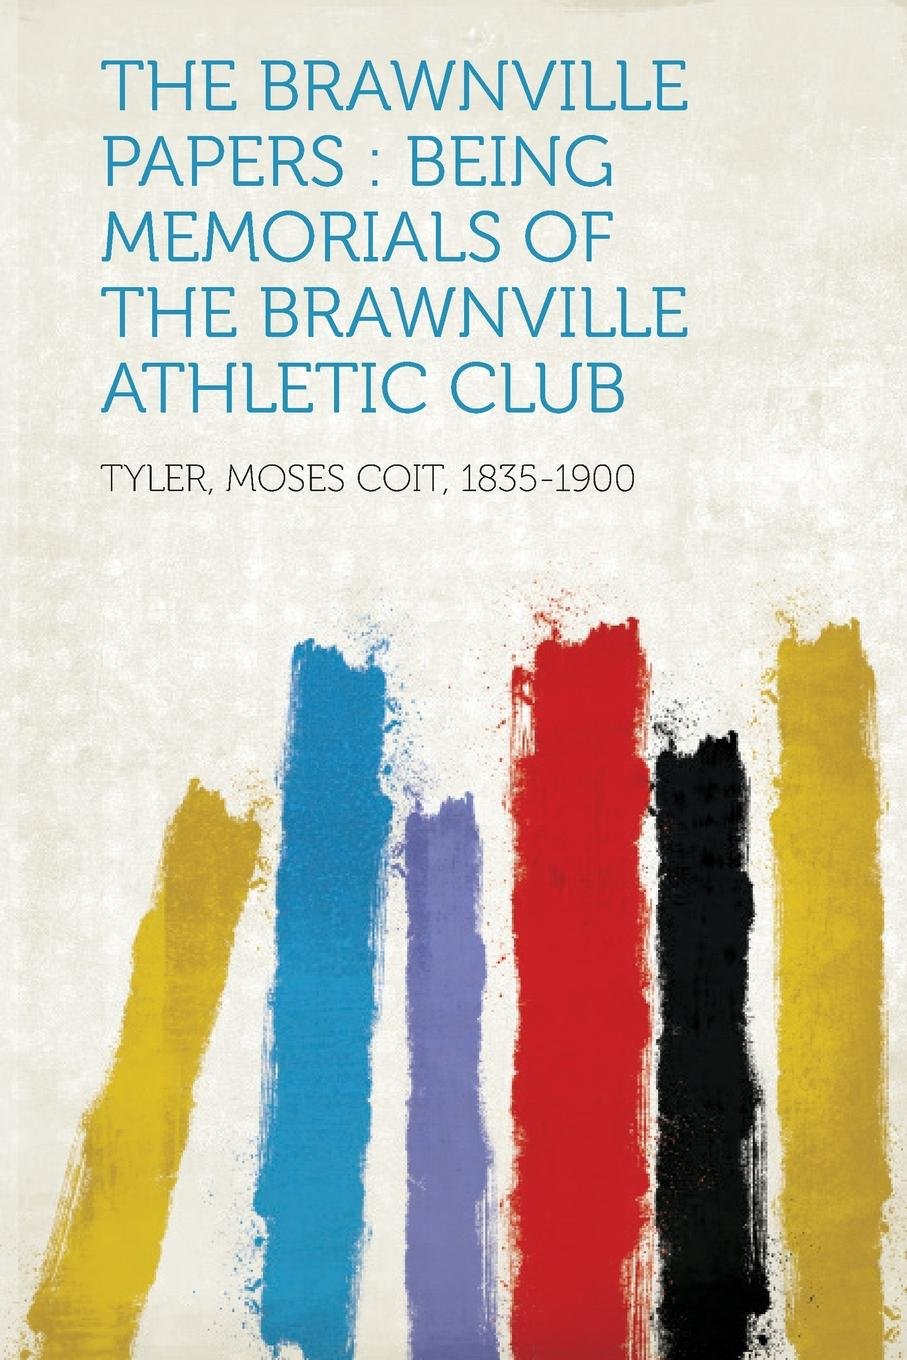 The Brawnville Papers: Being Memorials of the Brawnville Athletic Club pdf epub